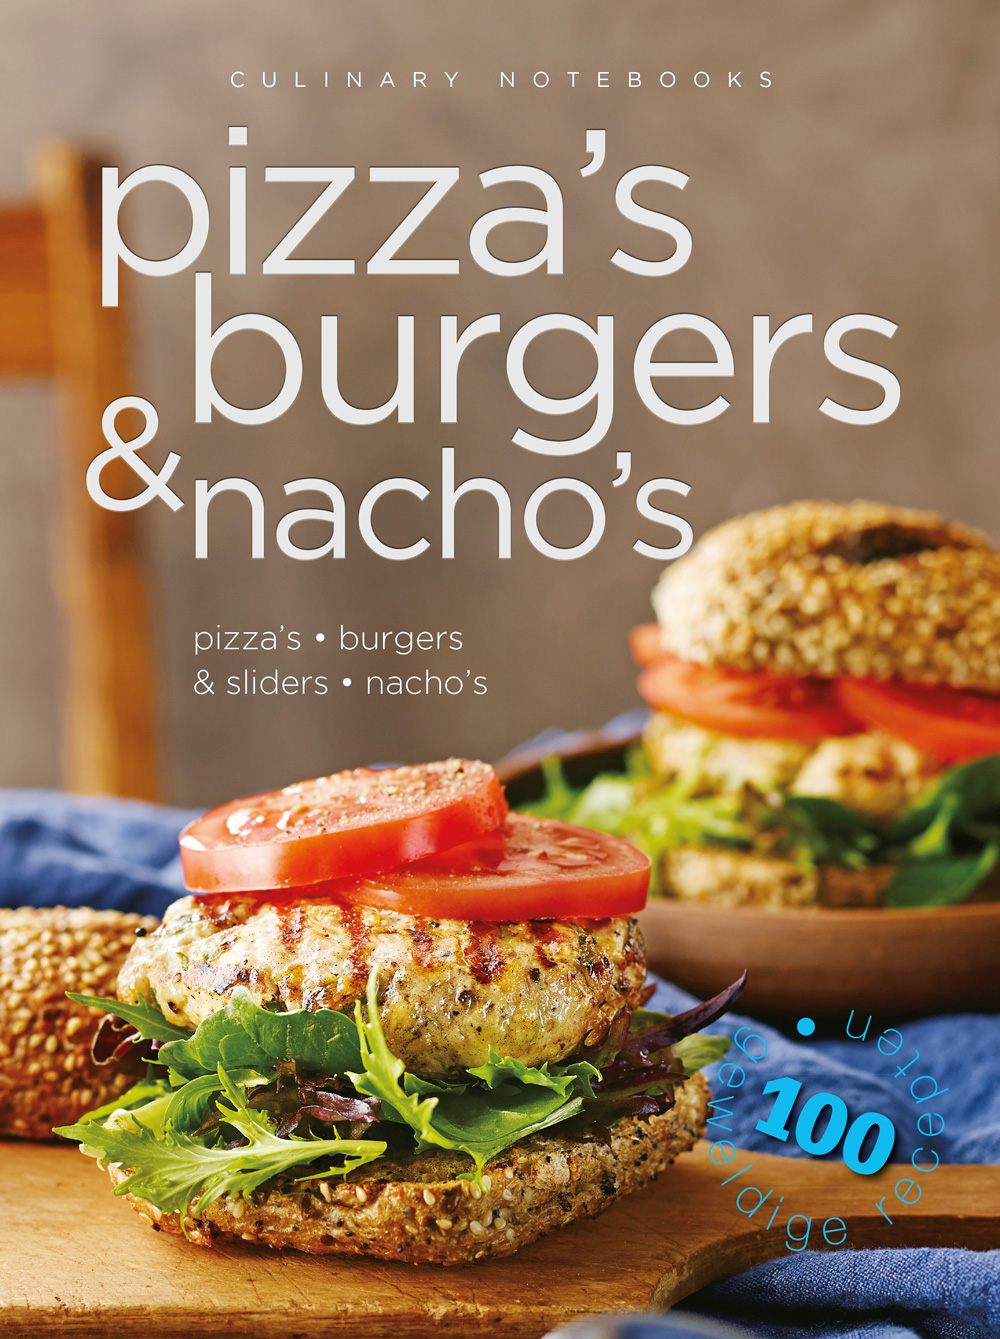 Culinary notebooks Pizza,burgers,